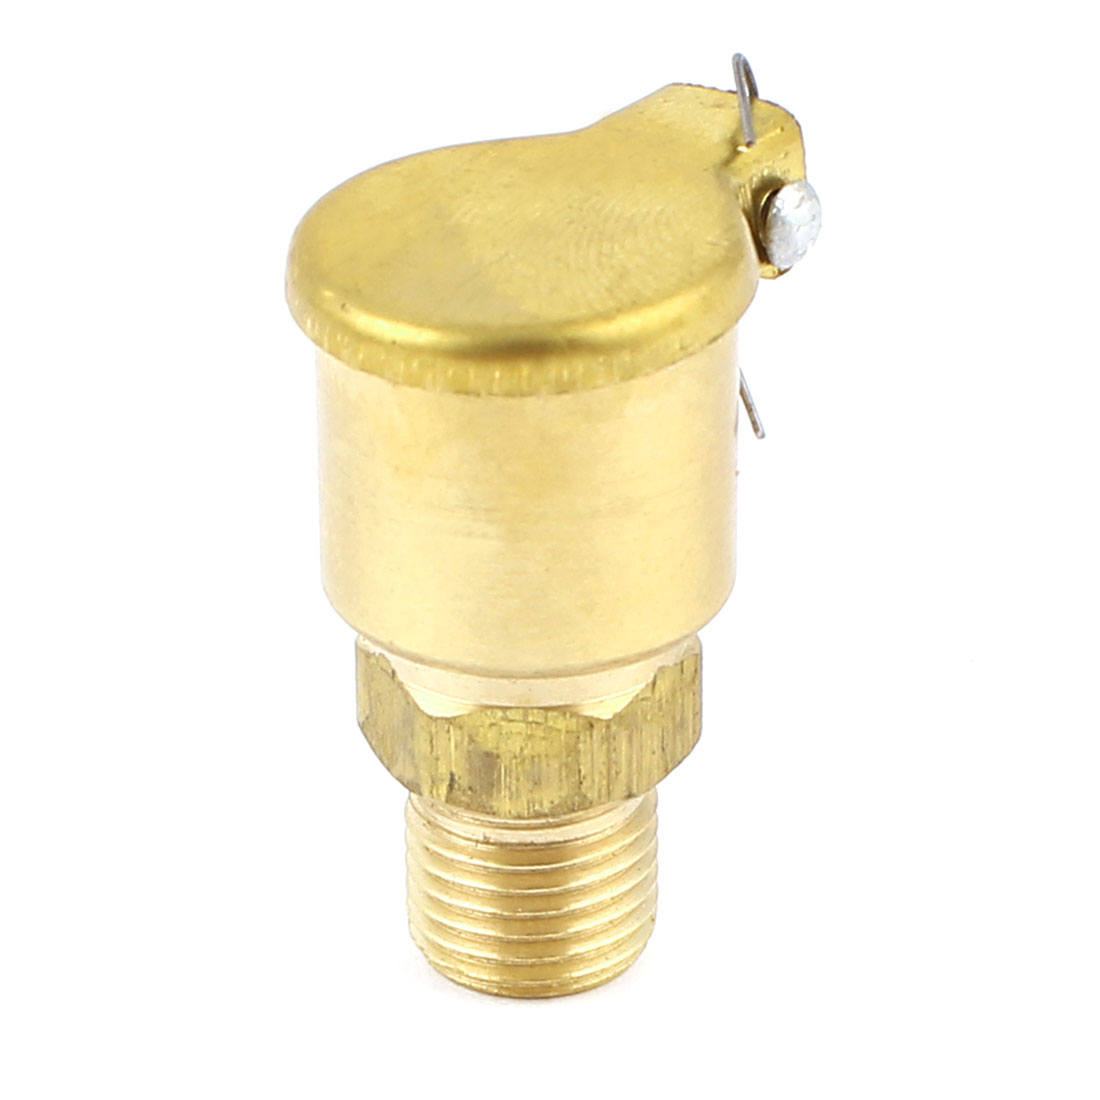 M10 Male Thread 1.5cm Dia Brass Spring Cover Cap Grease Lubricating Oil Cup